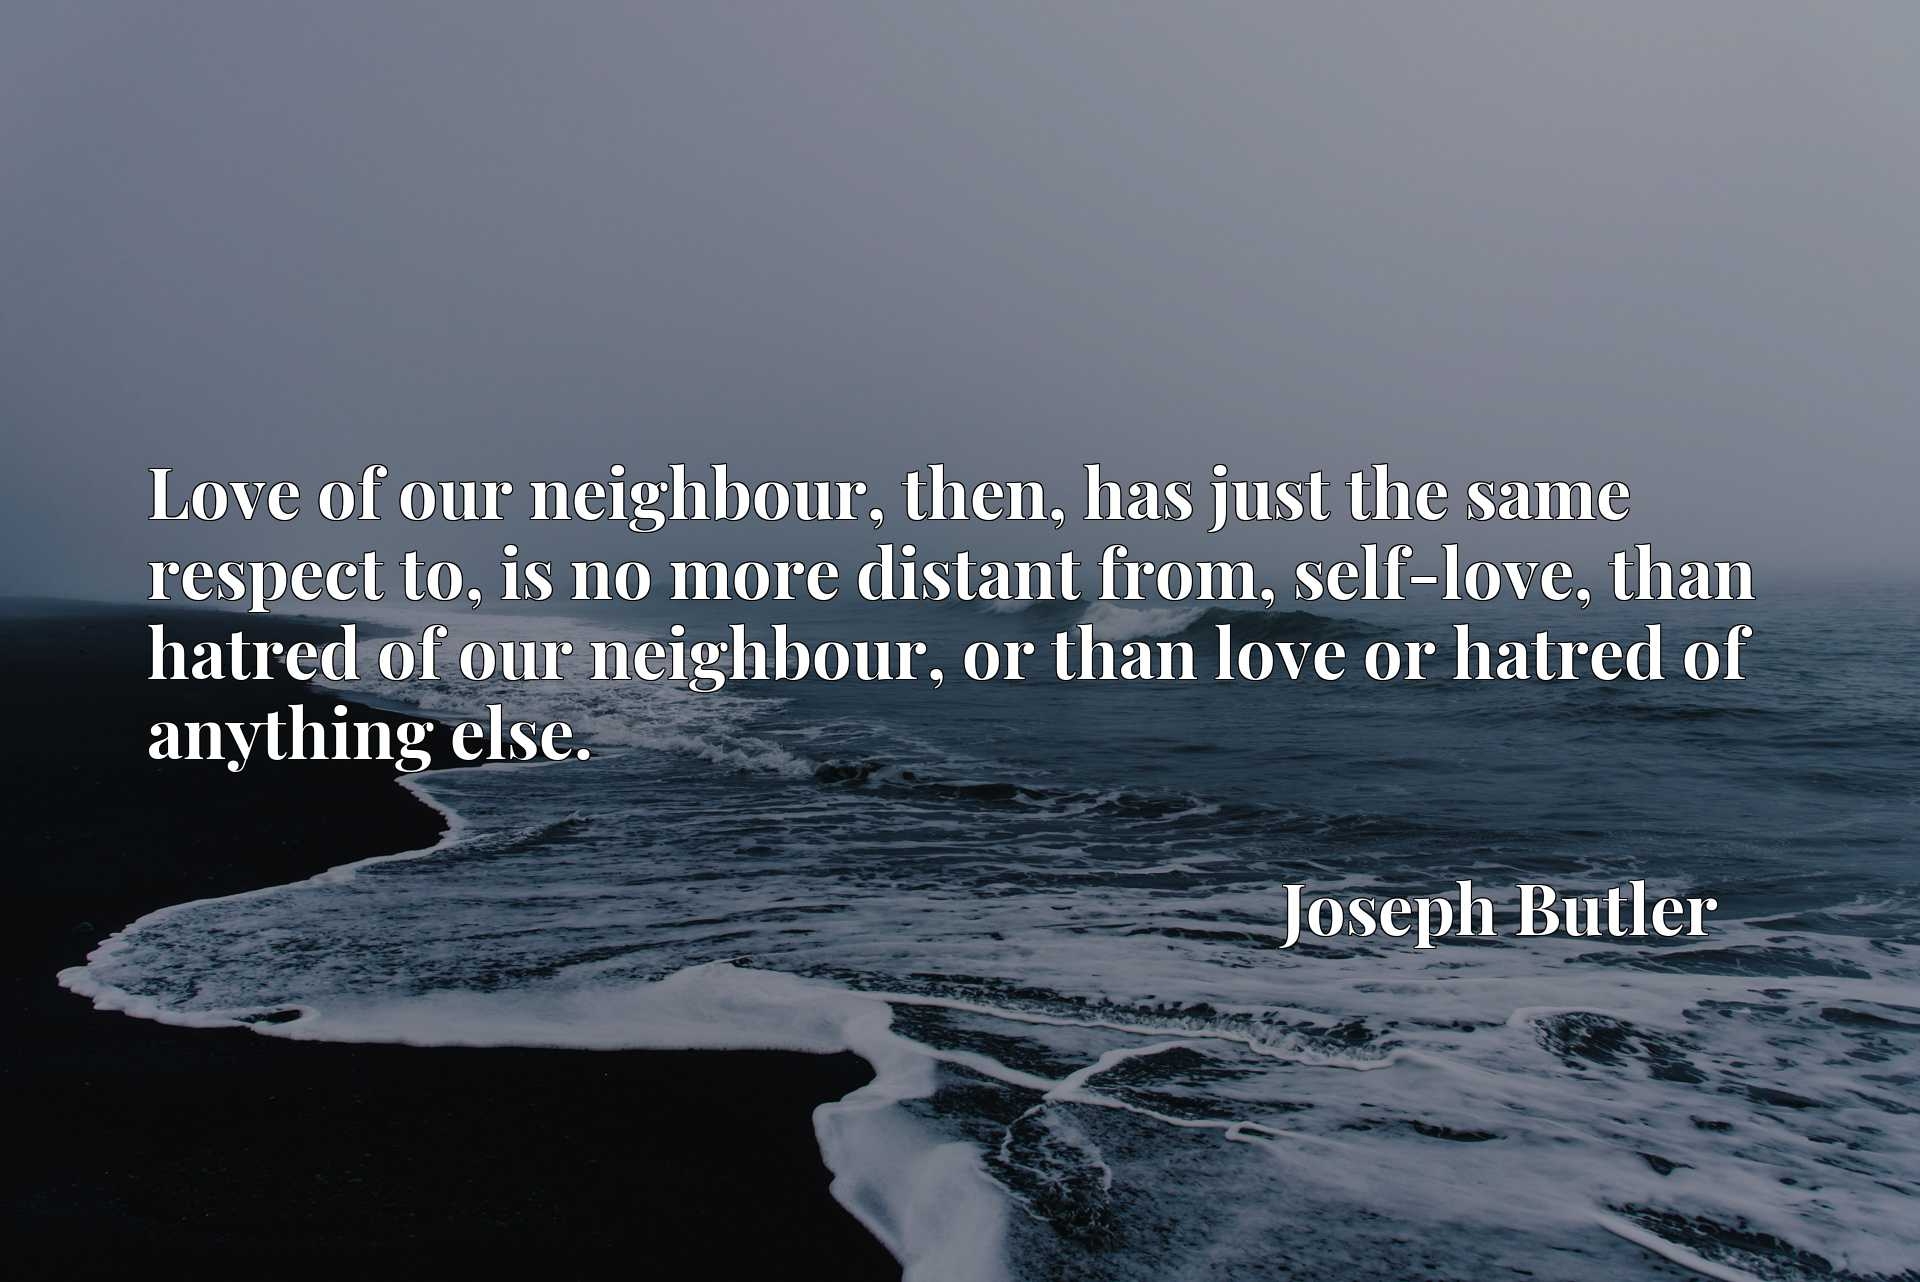 Love of our neighbour, then, has just the same respect to, is no more distant from, self-love, than hatred of our neighbour, or than love or hatred of anything else.